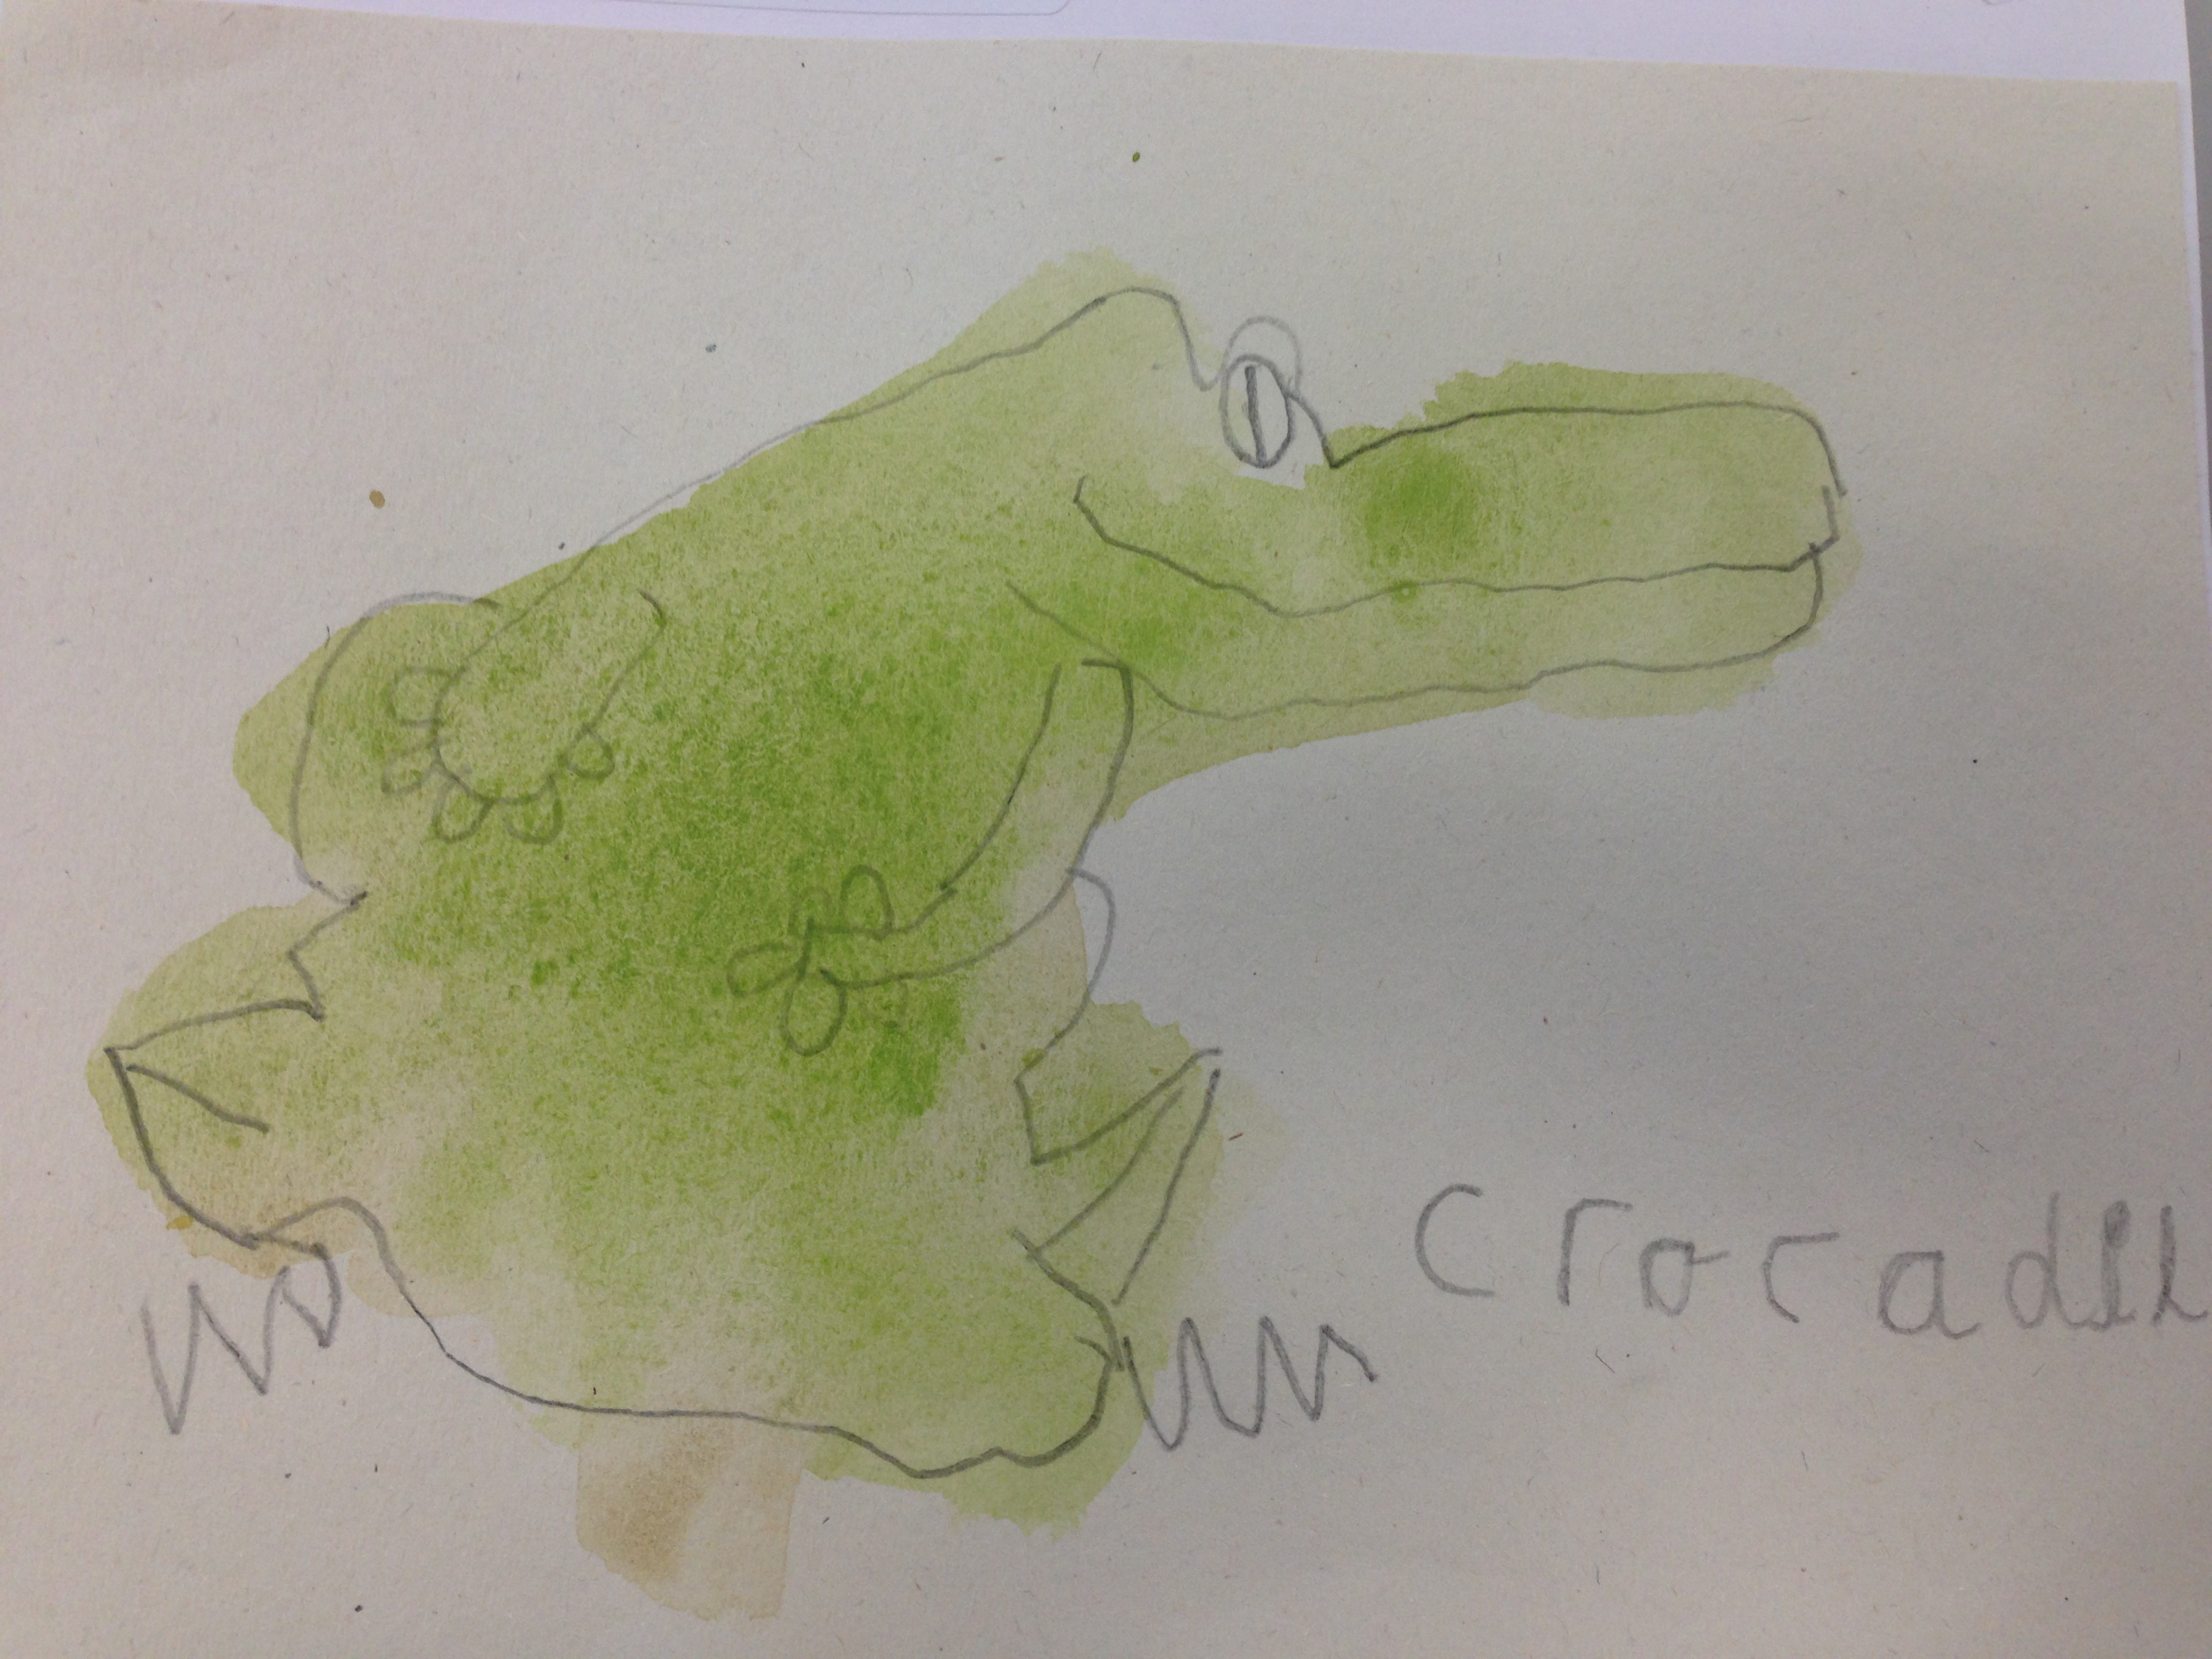 Croc watercolour